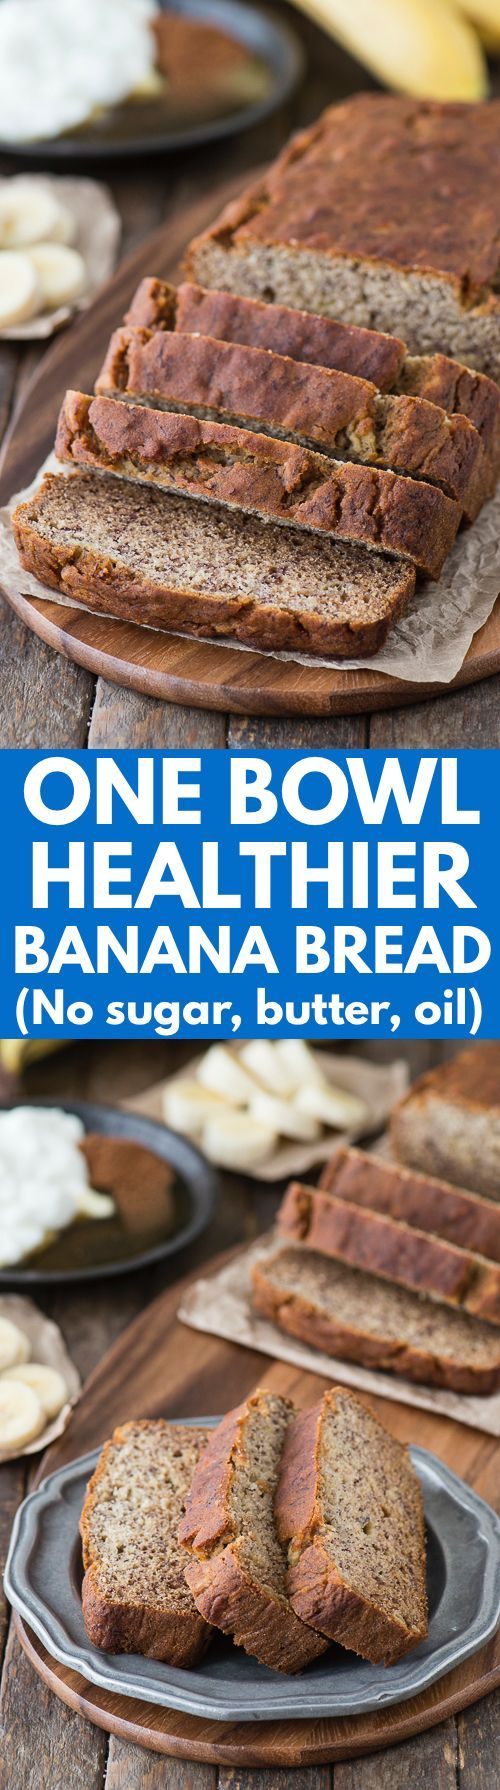 One bowl healthier banana bread recipe via The First Year with no sugar, butter, or oil! #dessertbreads #neighborgifts #homemadegifts #foodgifts #breadrecipes #flavoredbreads #sweetbreads #holidaybread #bread #homemadebread #simplebreadrecipes #simplebread #simplerecipes